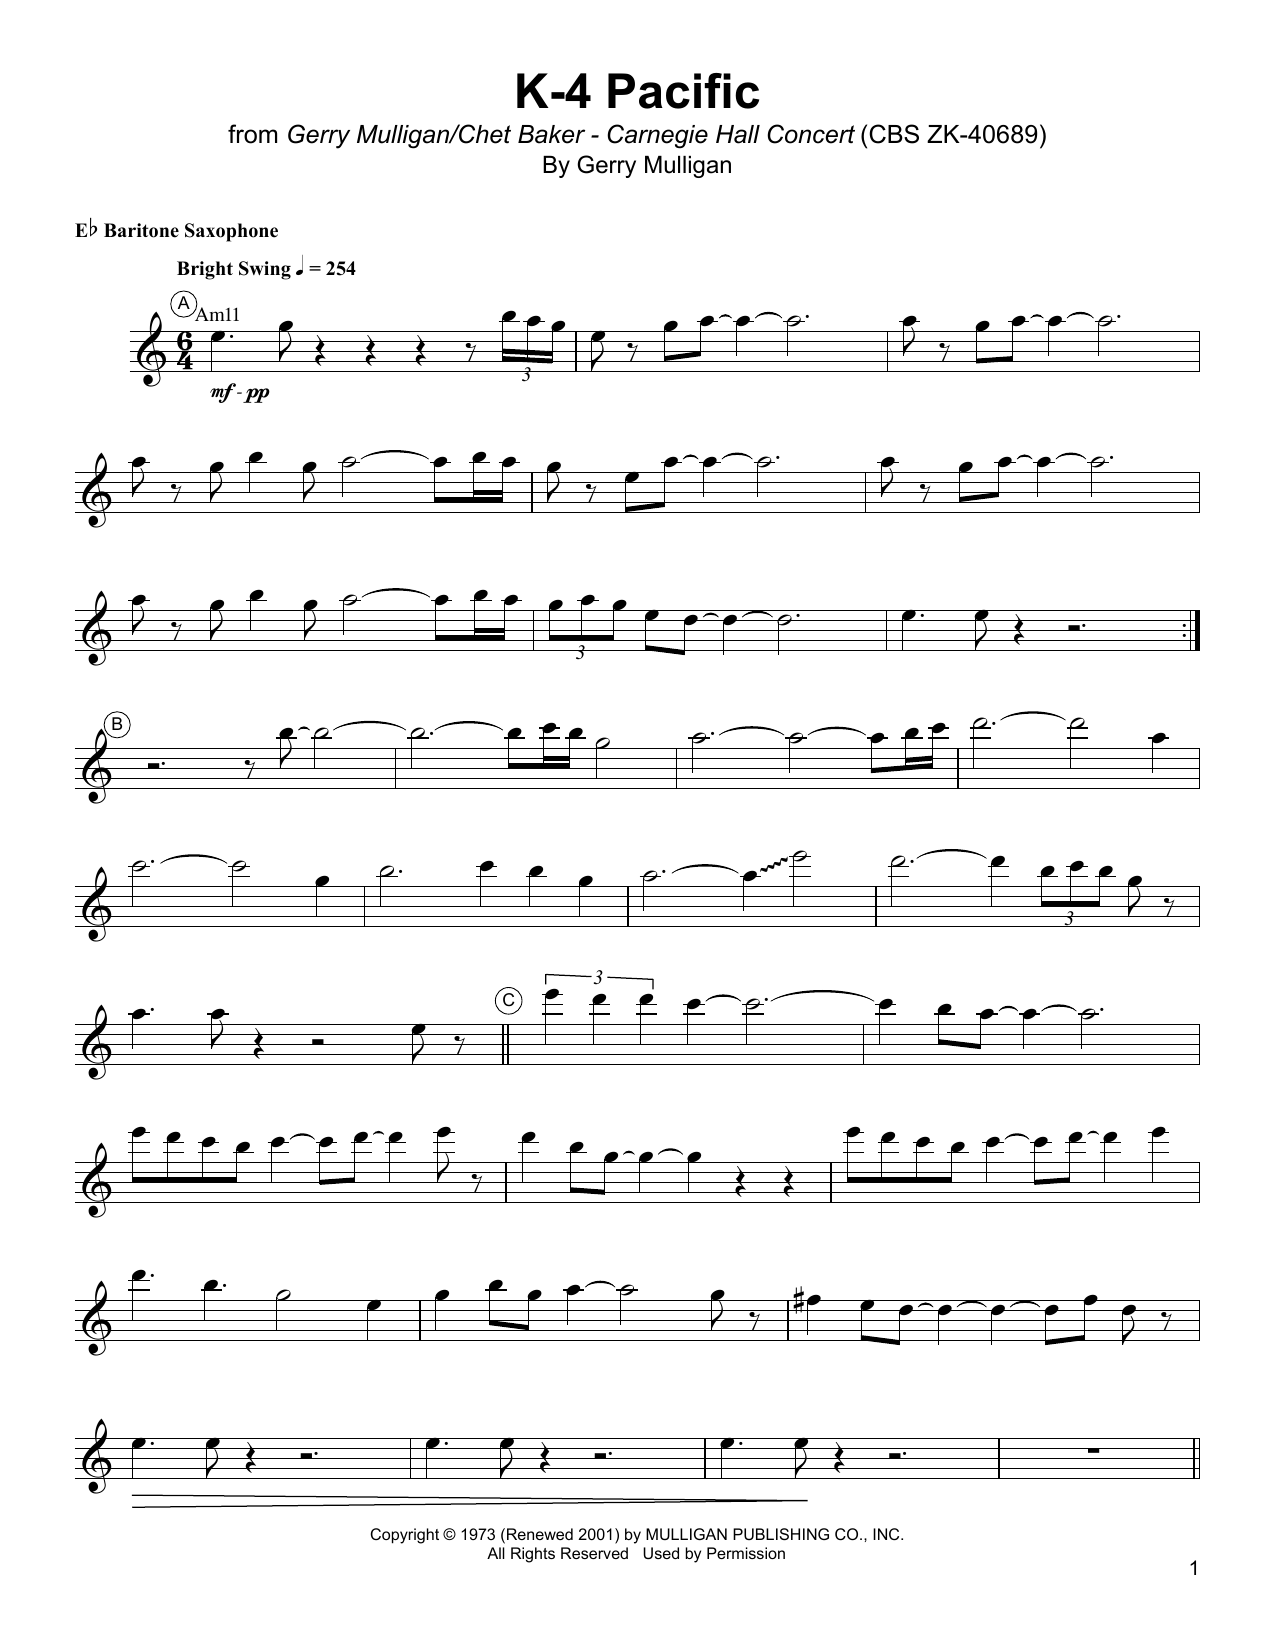 Gerry Mulligan K-4 Pacific sheet music notes and chords